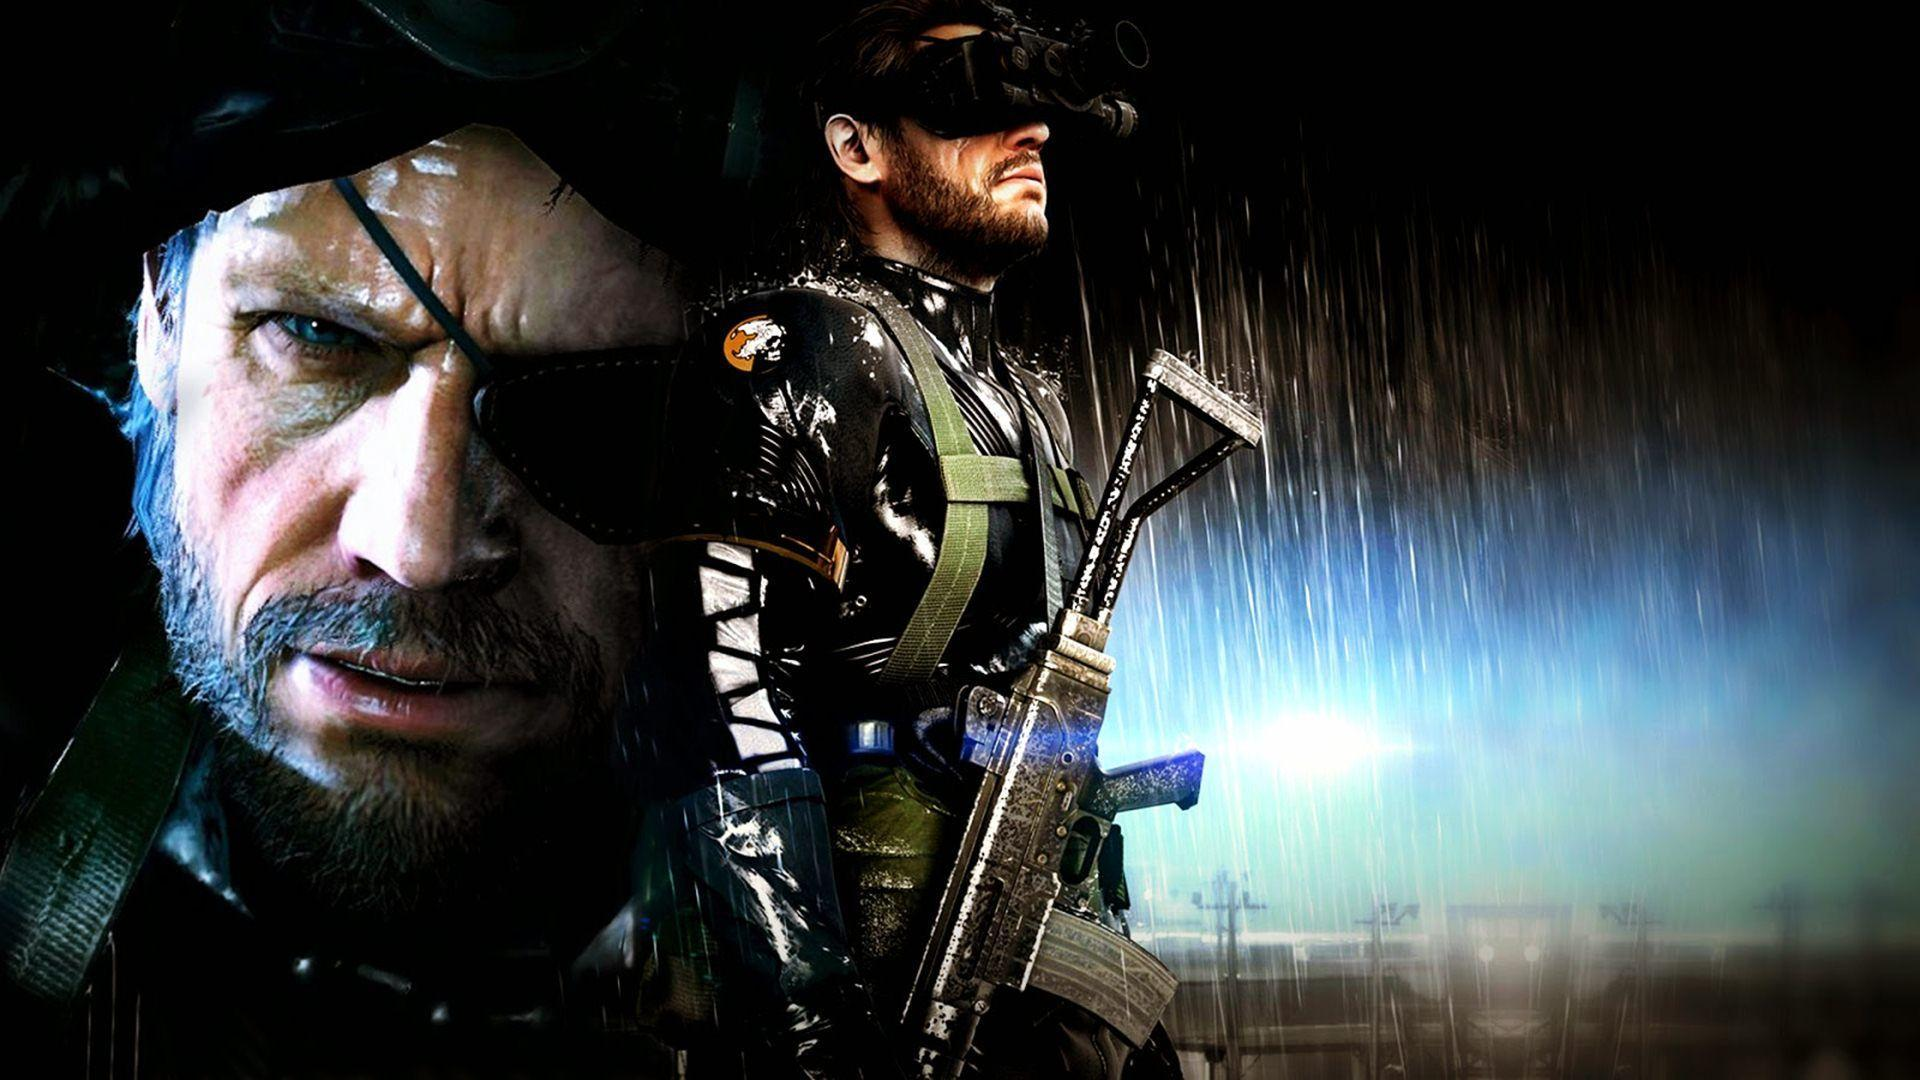 Metal Gear Solid 5: The Phantom Pain Wallpapers, Pictures, Image